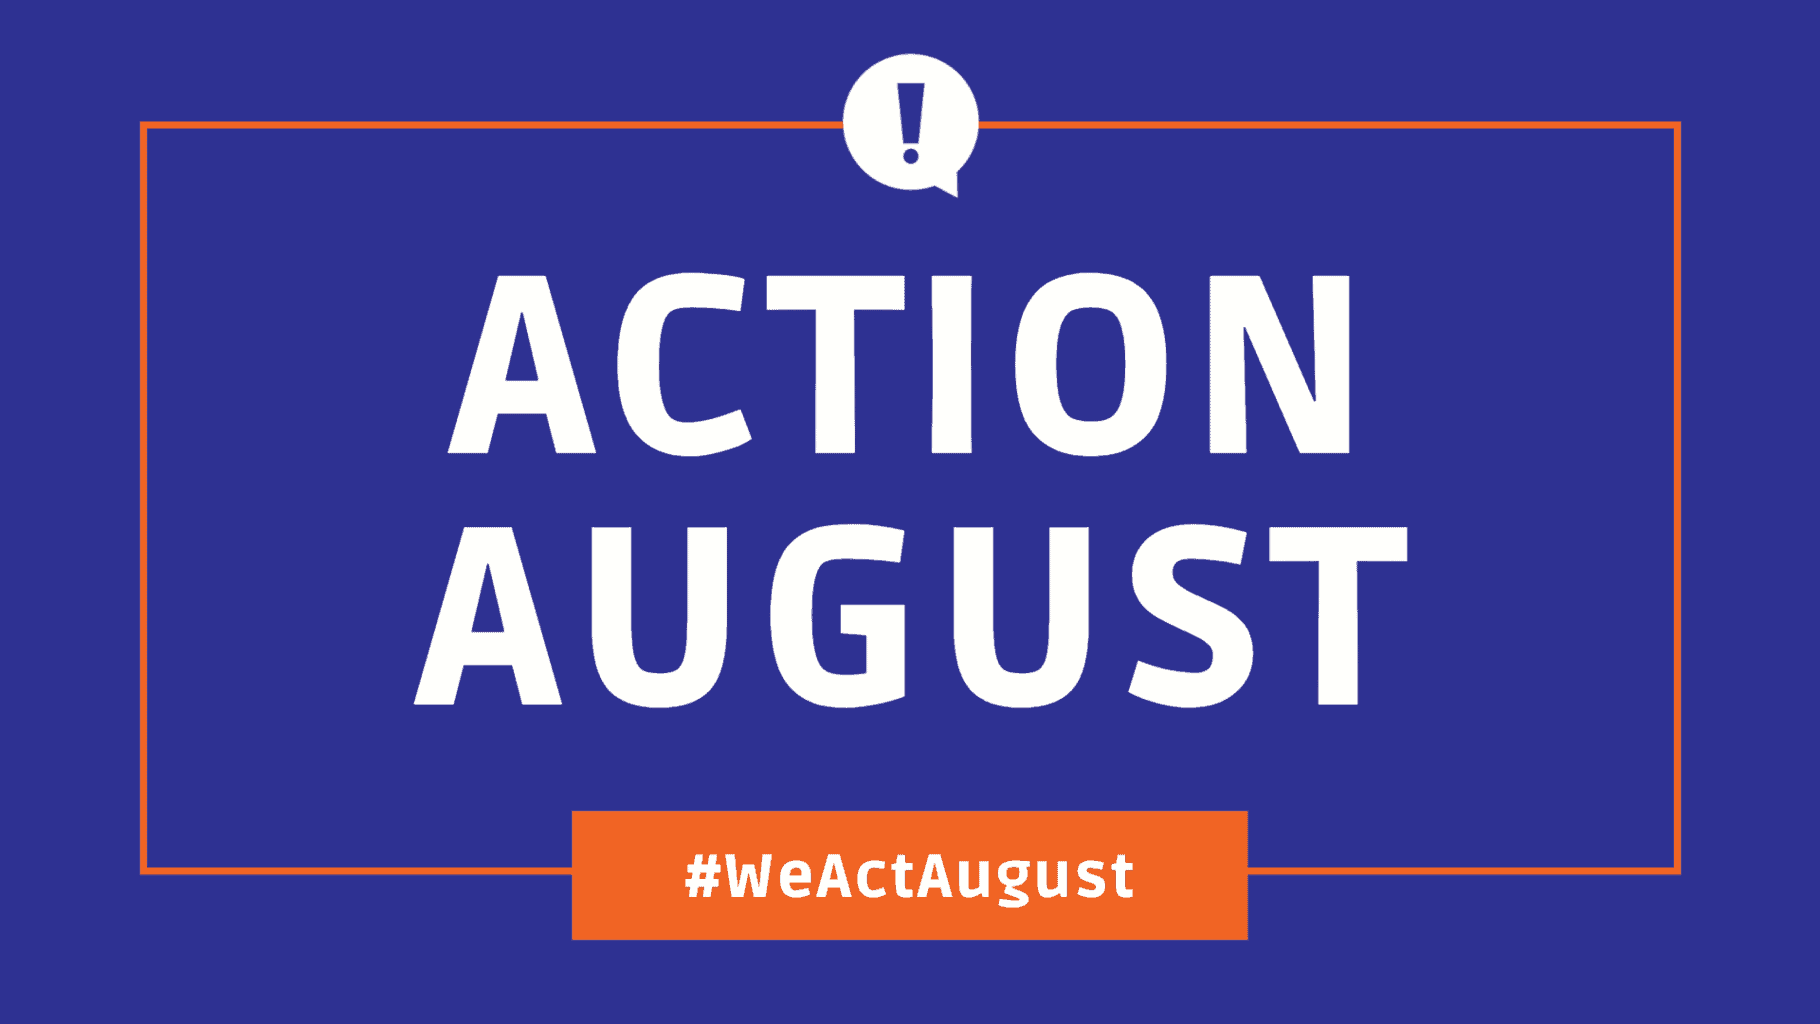 The words Action August and the hashtag #WeActAugust printed on a blue and orange image